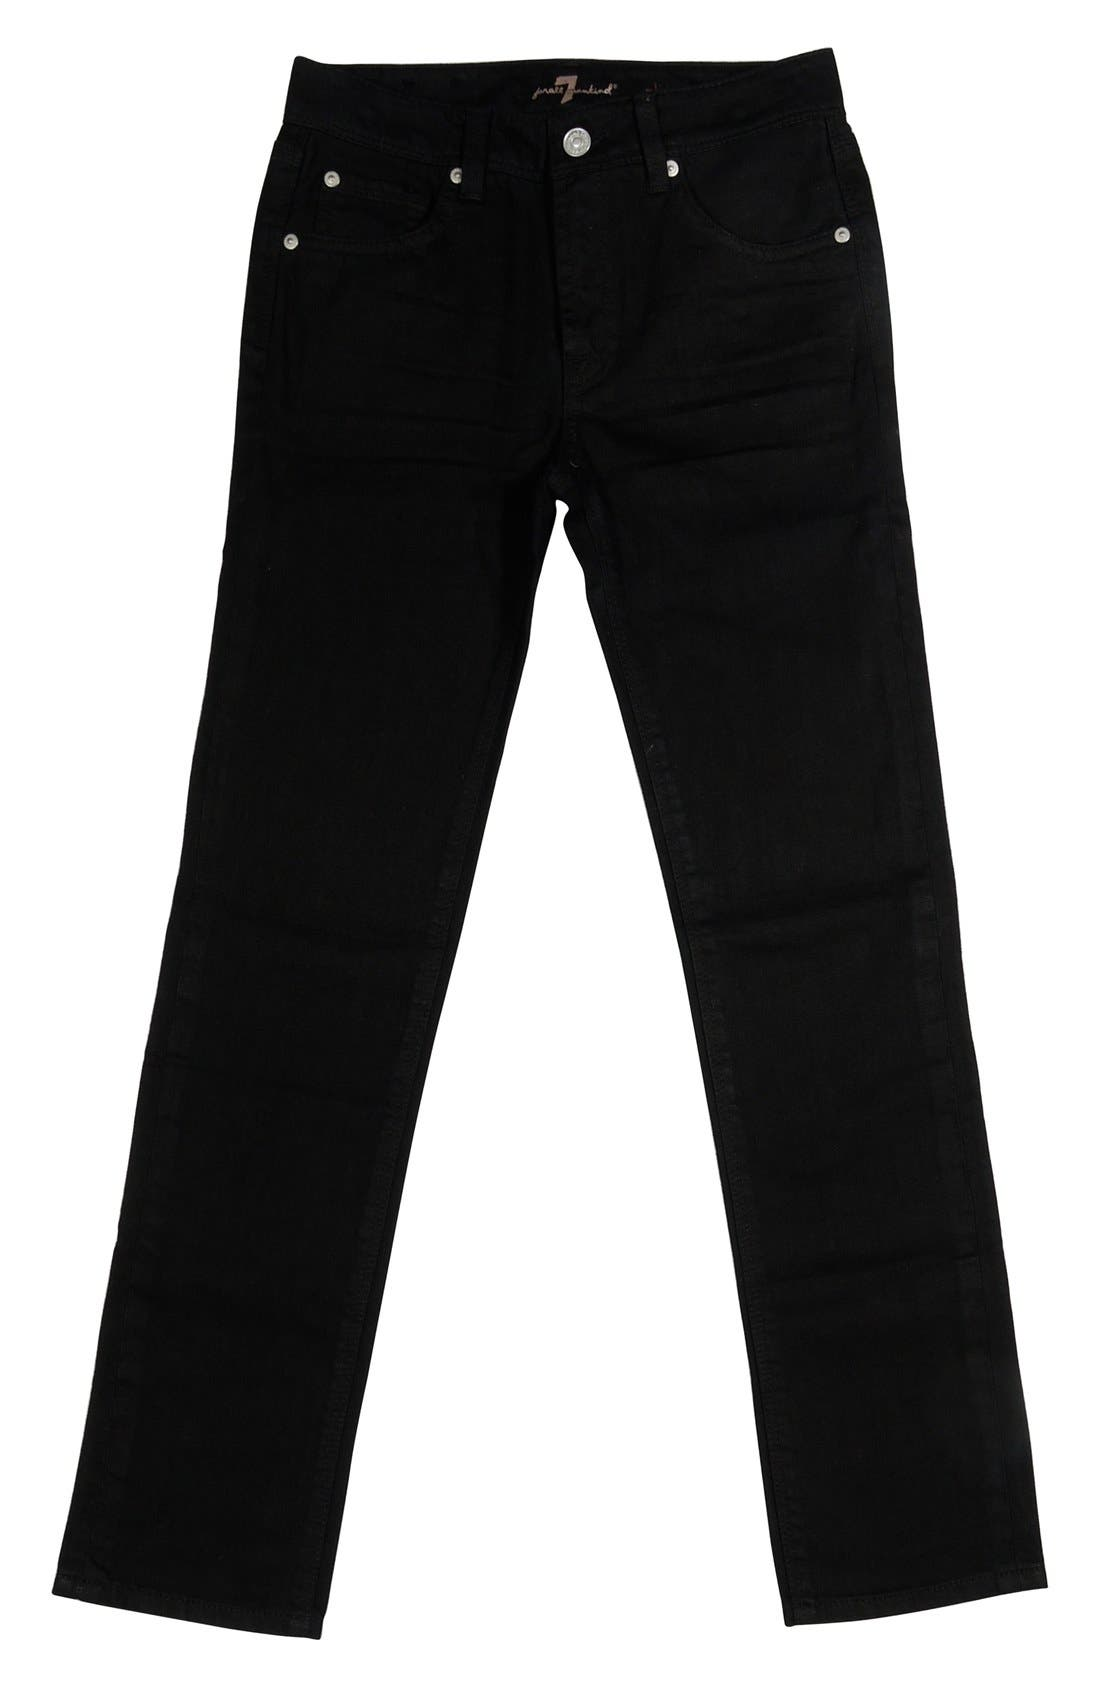 'Slimmy' Jeans,                         Main,                         color,